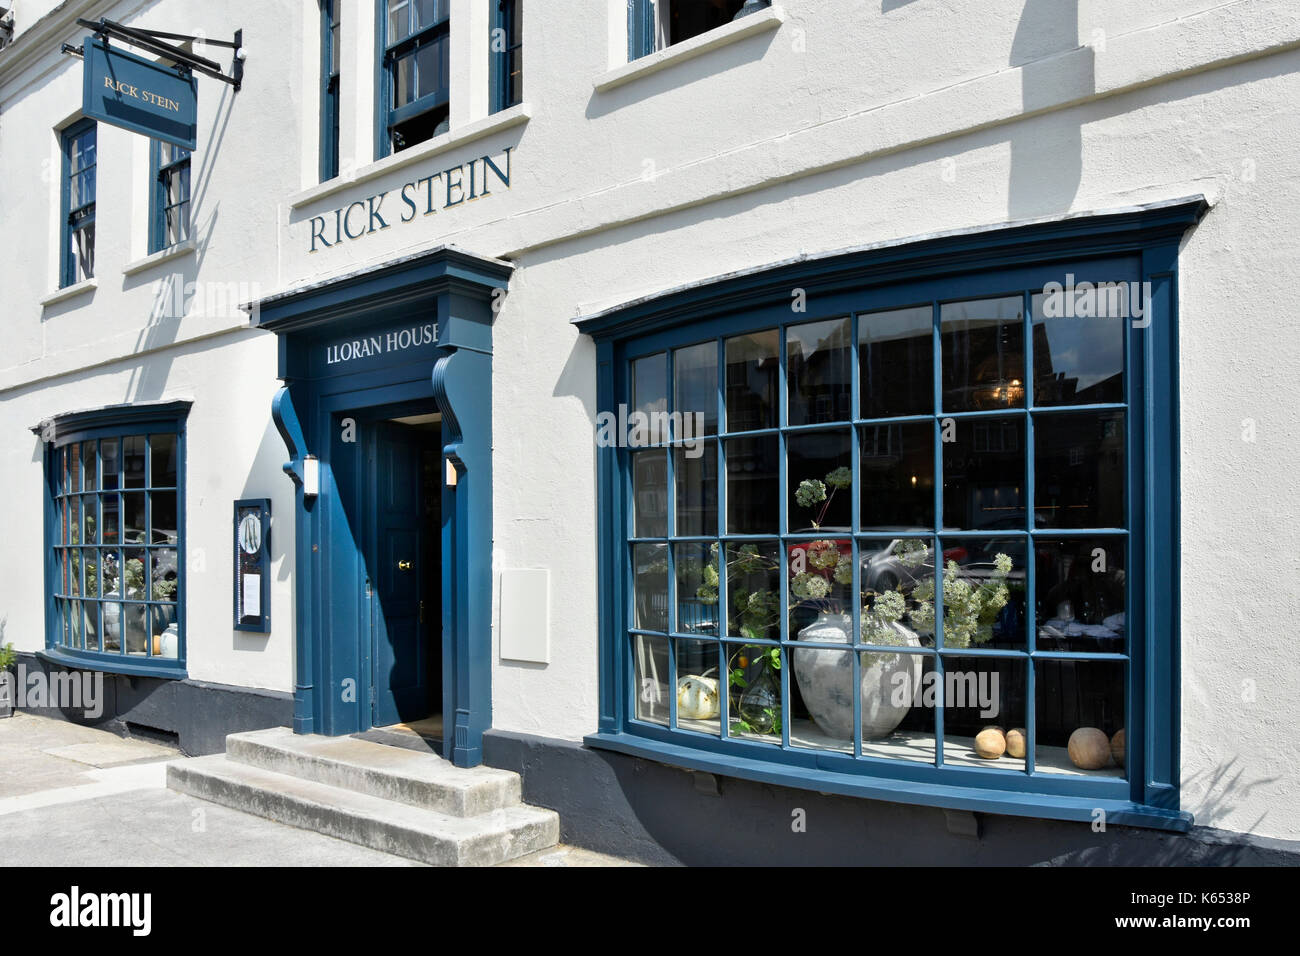 Rick stein fish and seafood restaurant front elevation for Rick s fish and pet